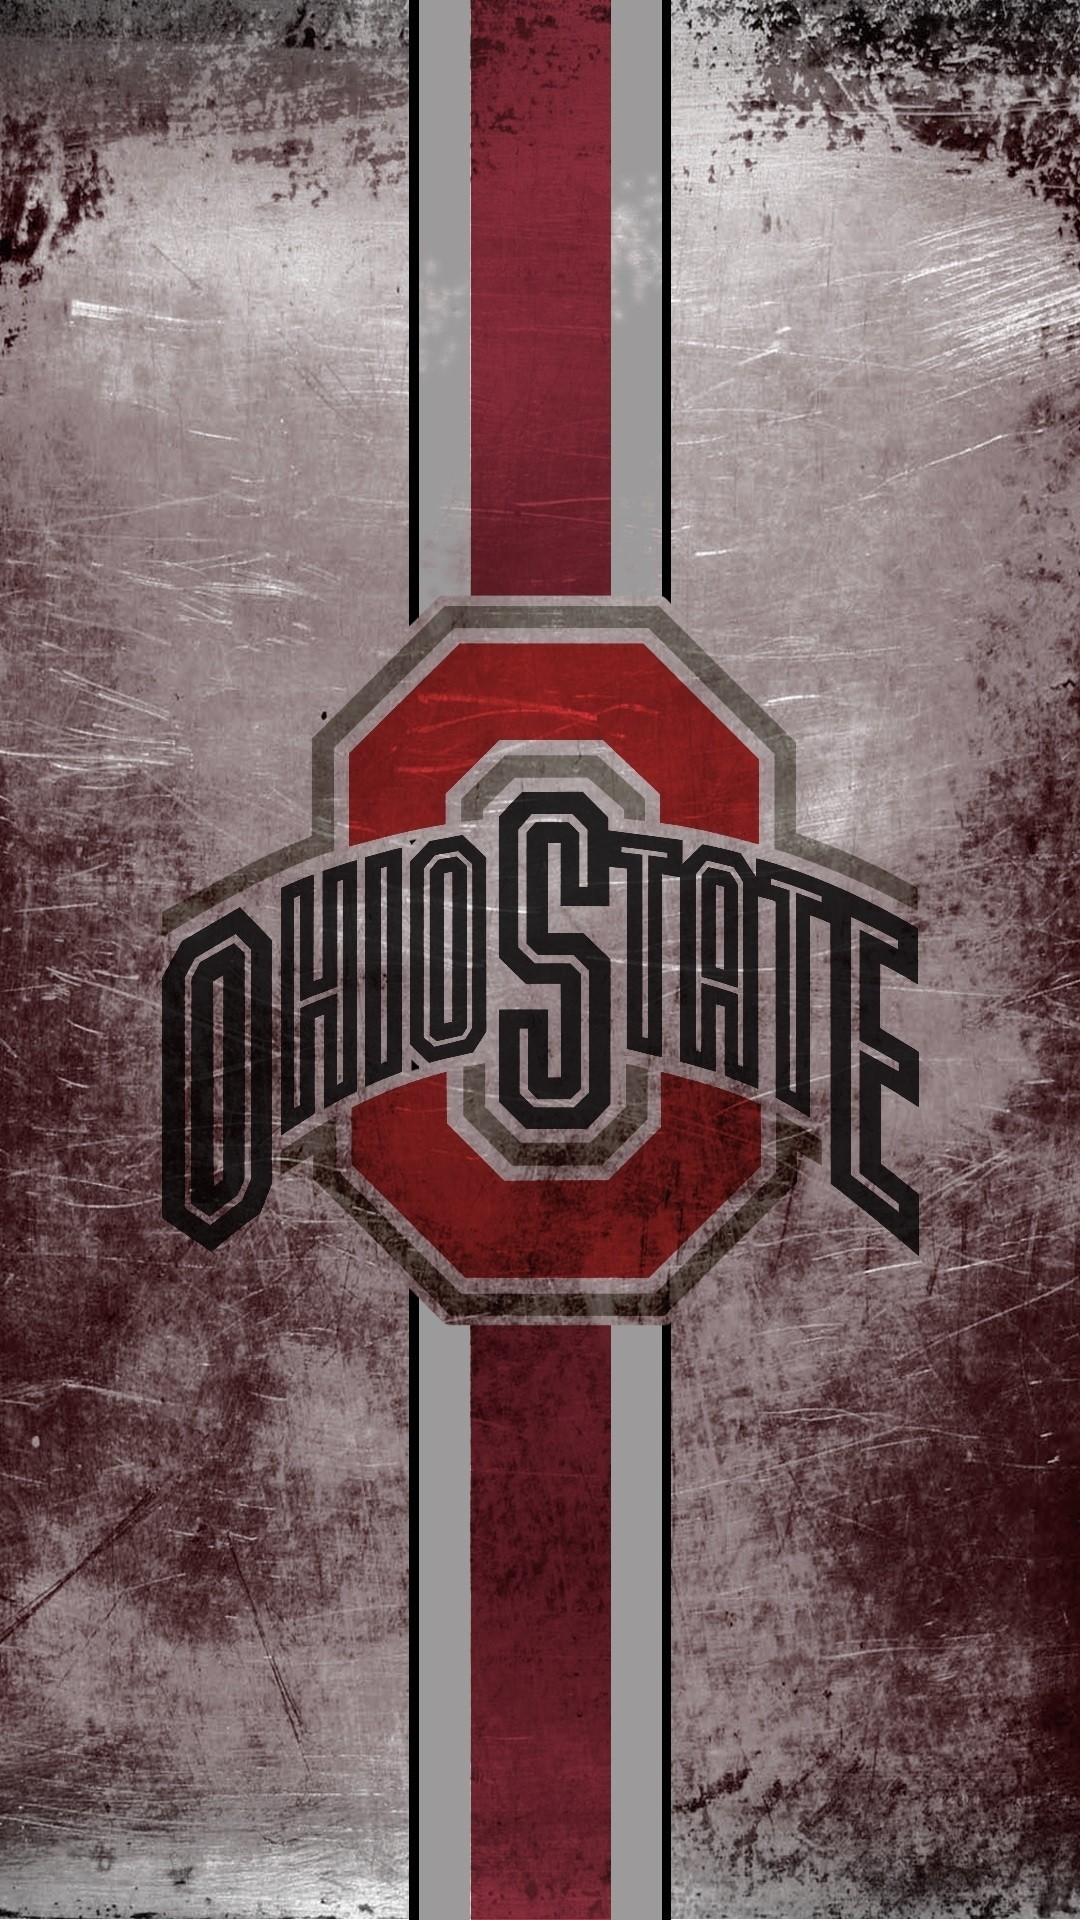 1080x1920 Ohio State Iphone Wallpaper resolution